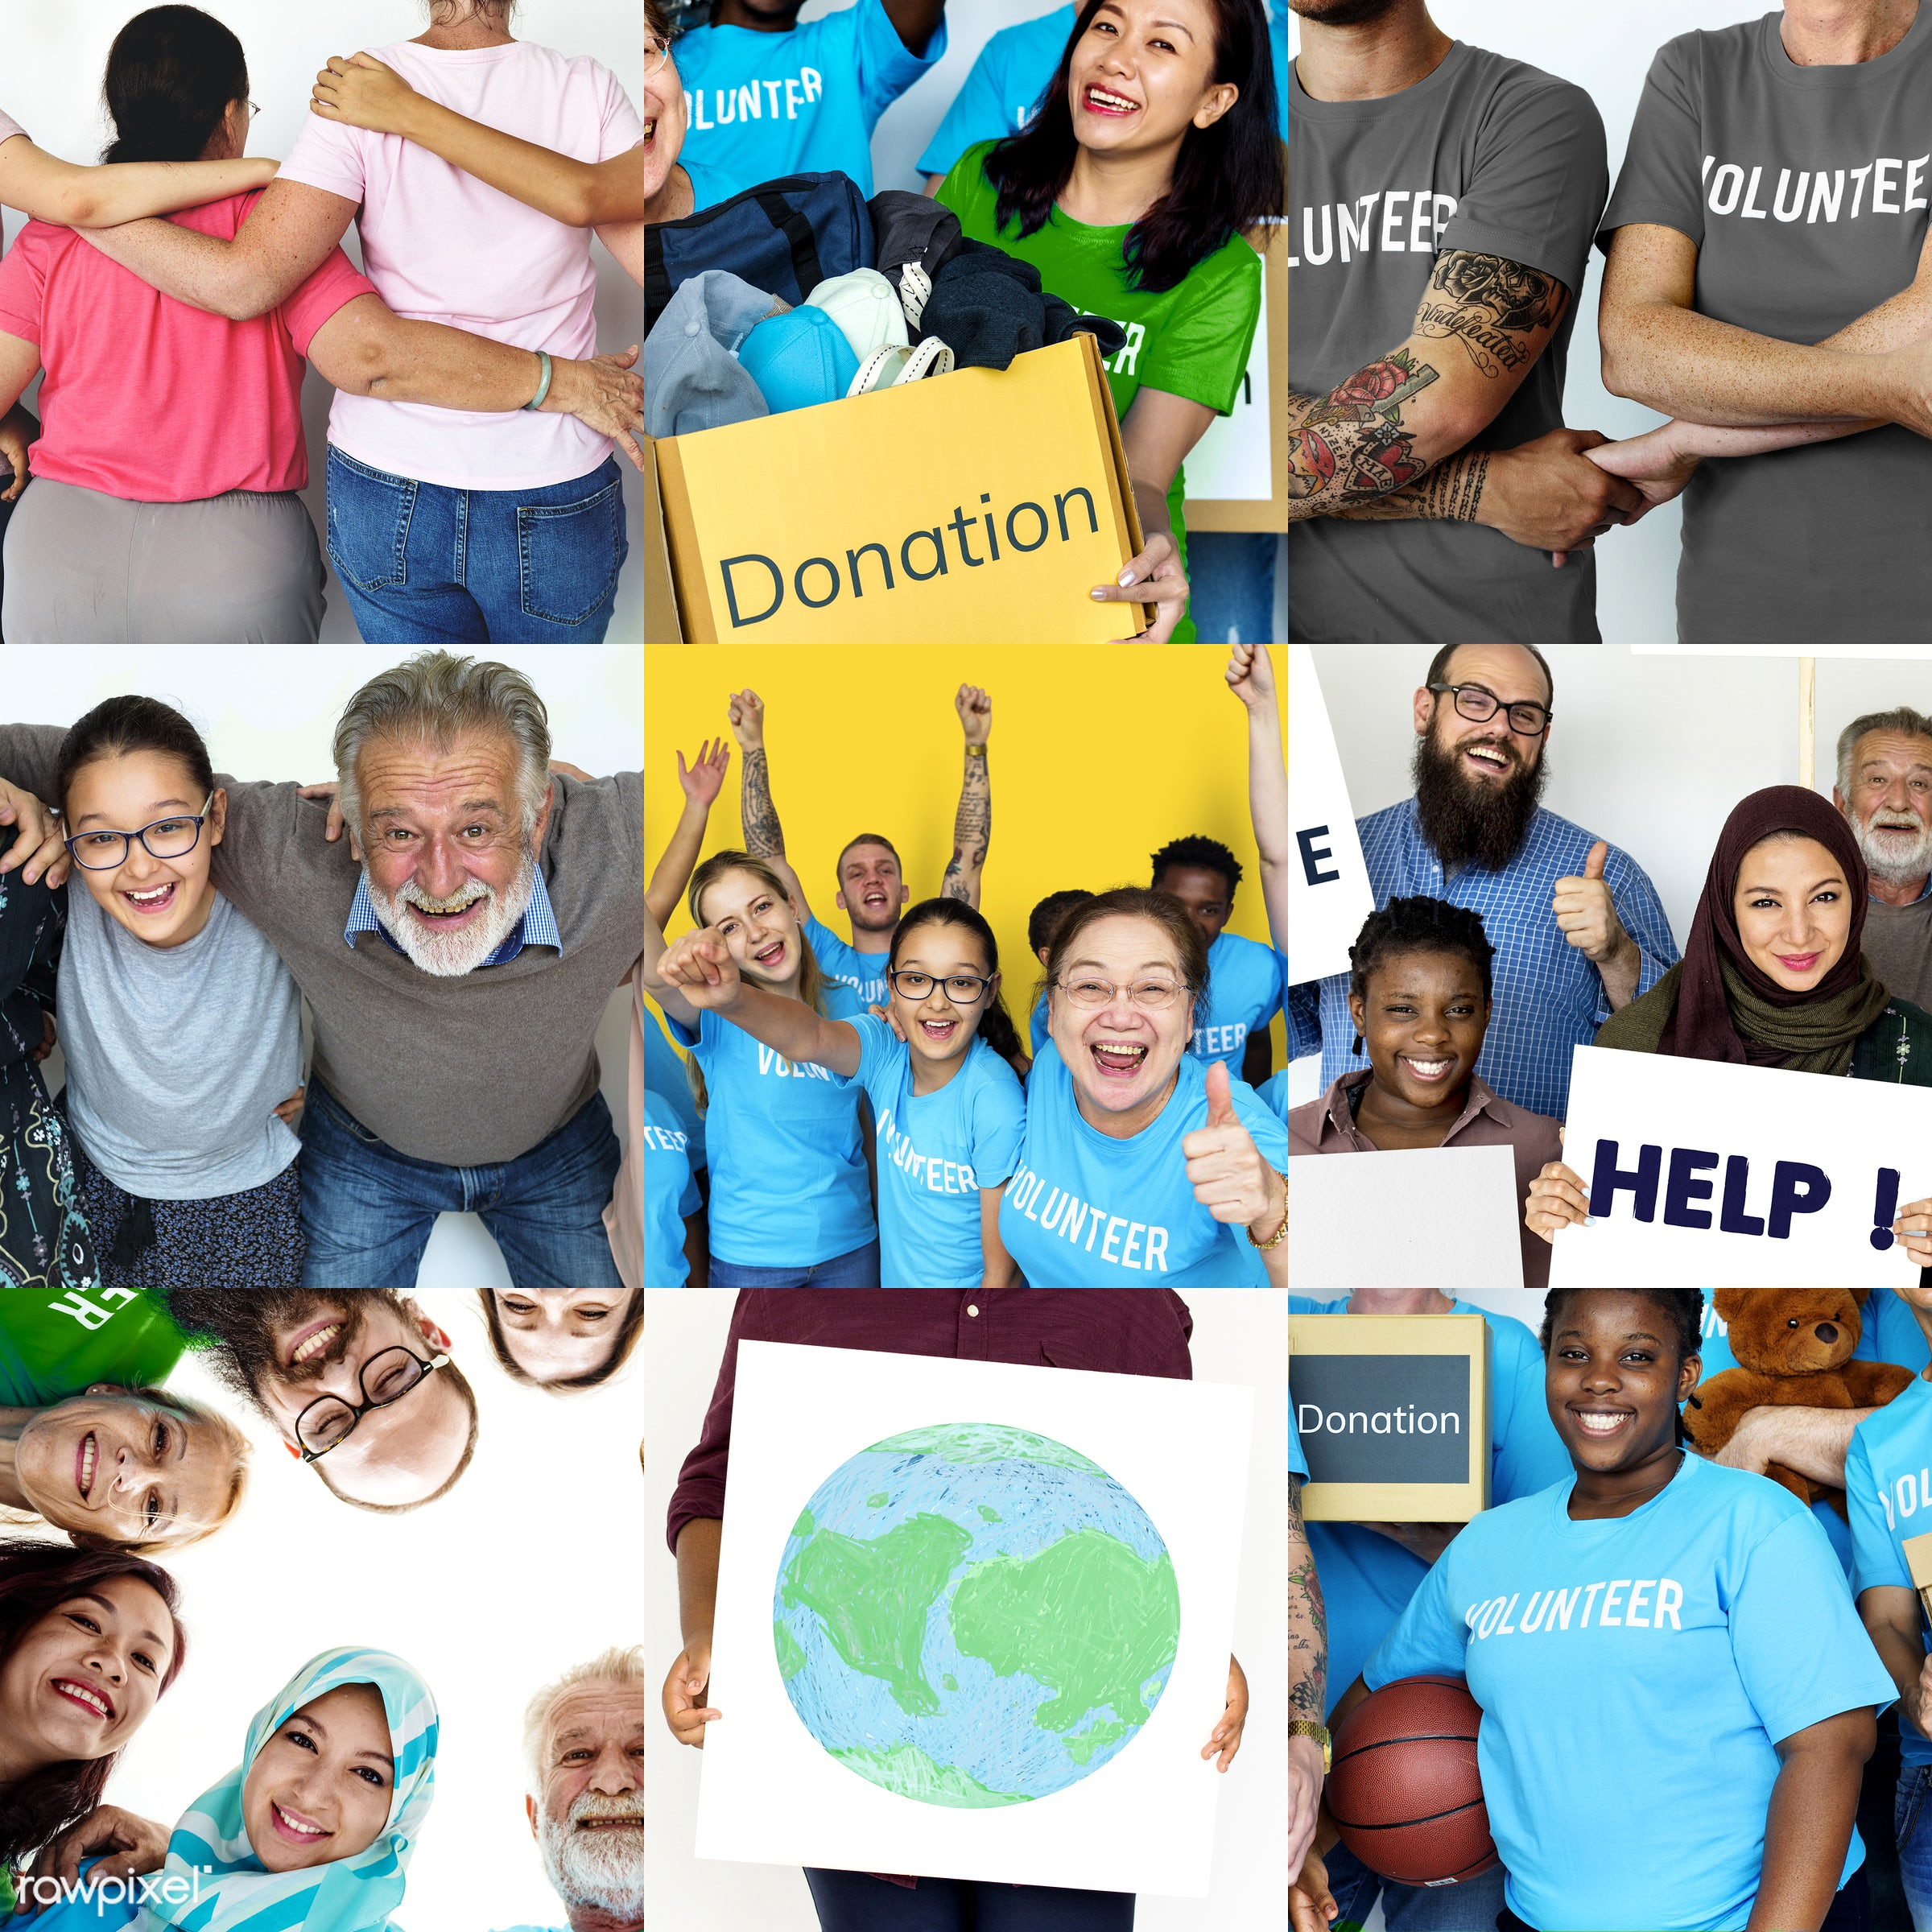 person, diverse, variation, charity, people, caucasian, asian, help, teamwork, woman, social, care, smile, voluntary,...